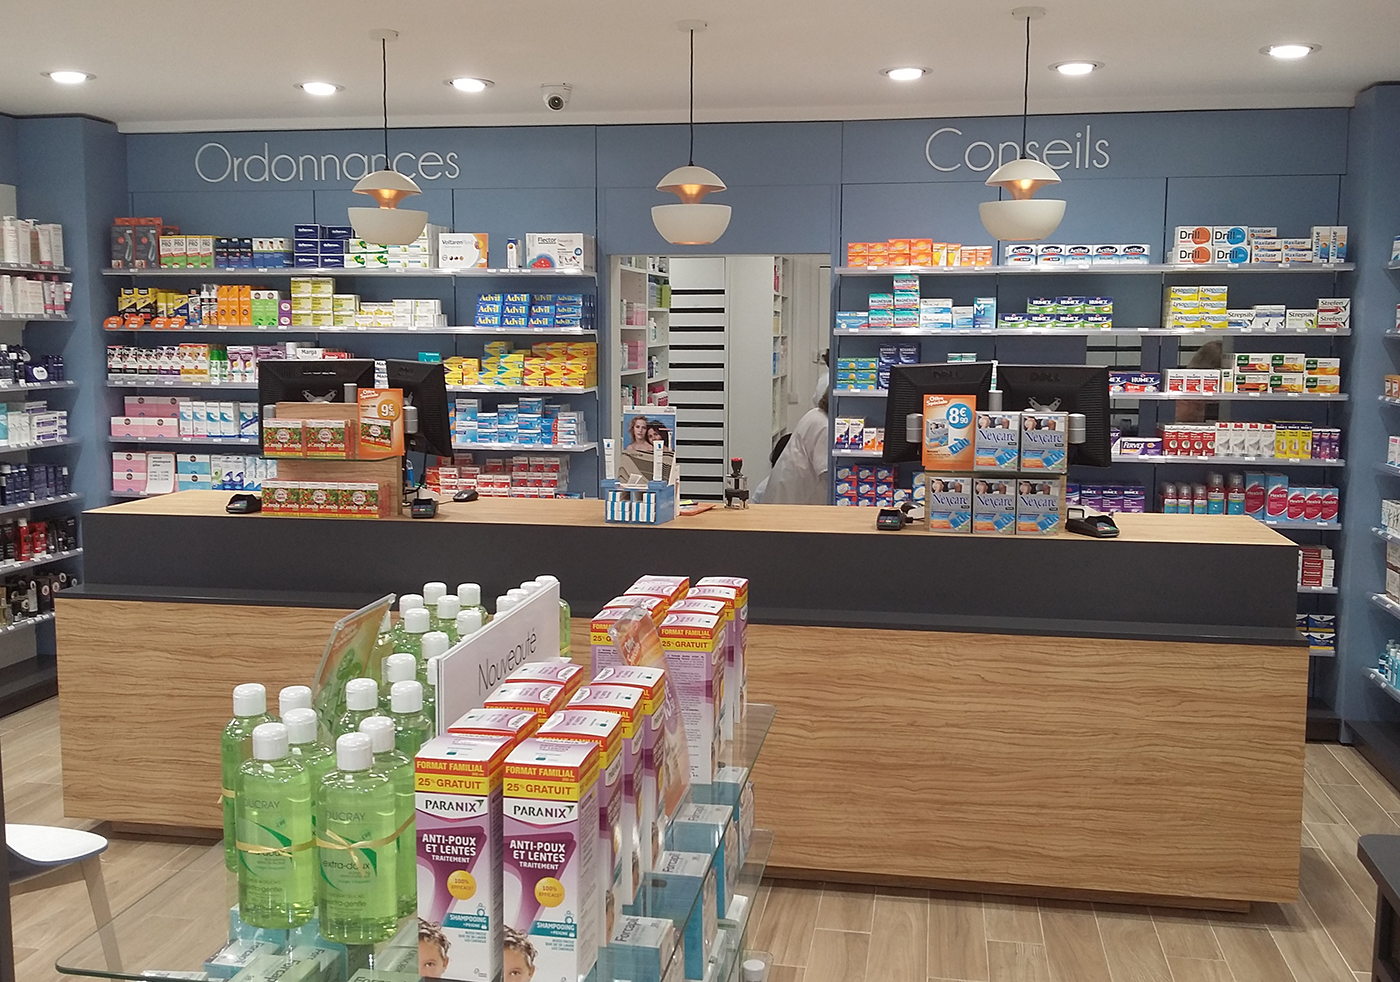 Pharmacie saint hilaire comptoir carre boursin agencement for Boursin agencement